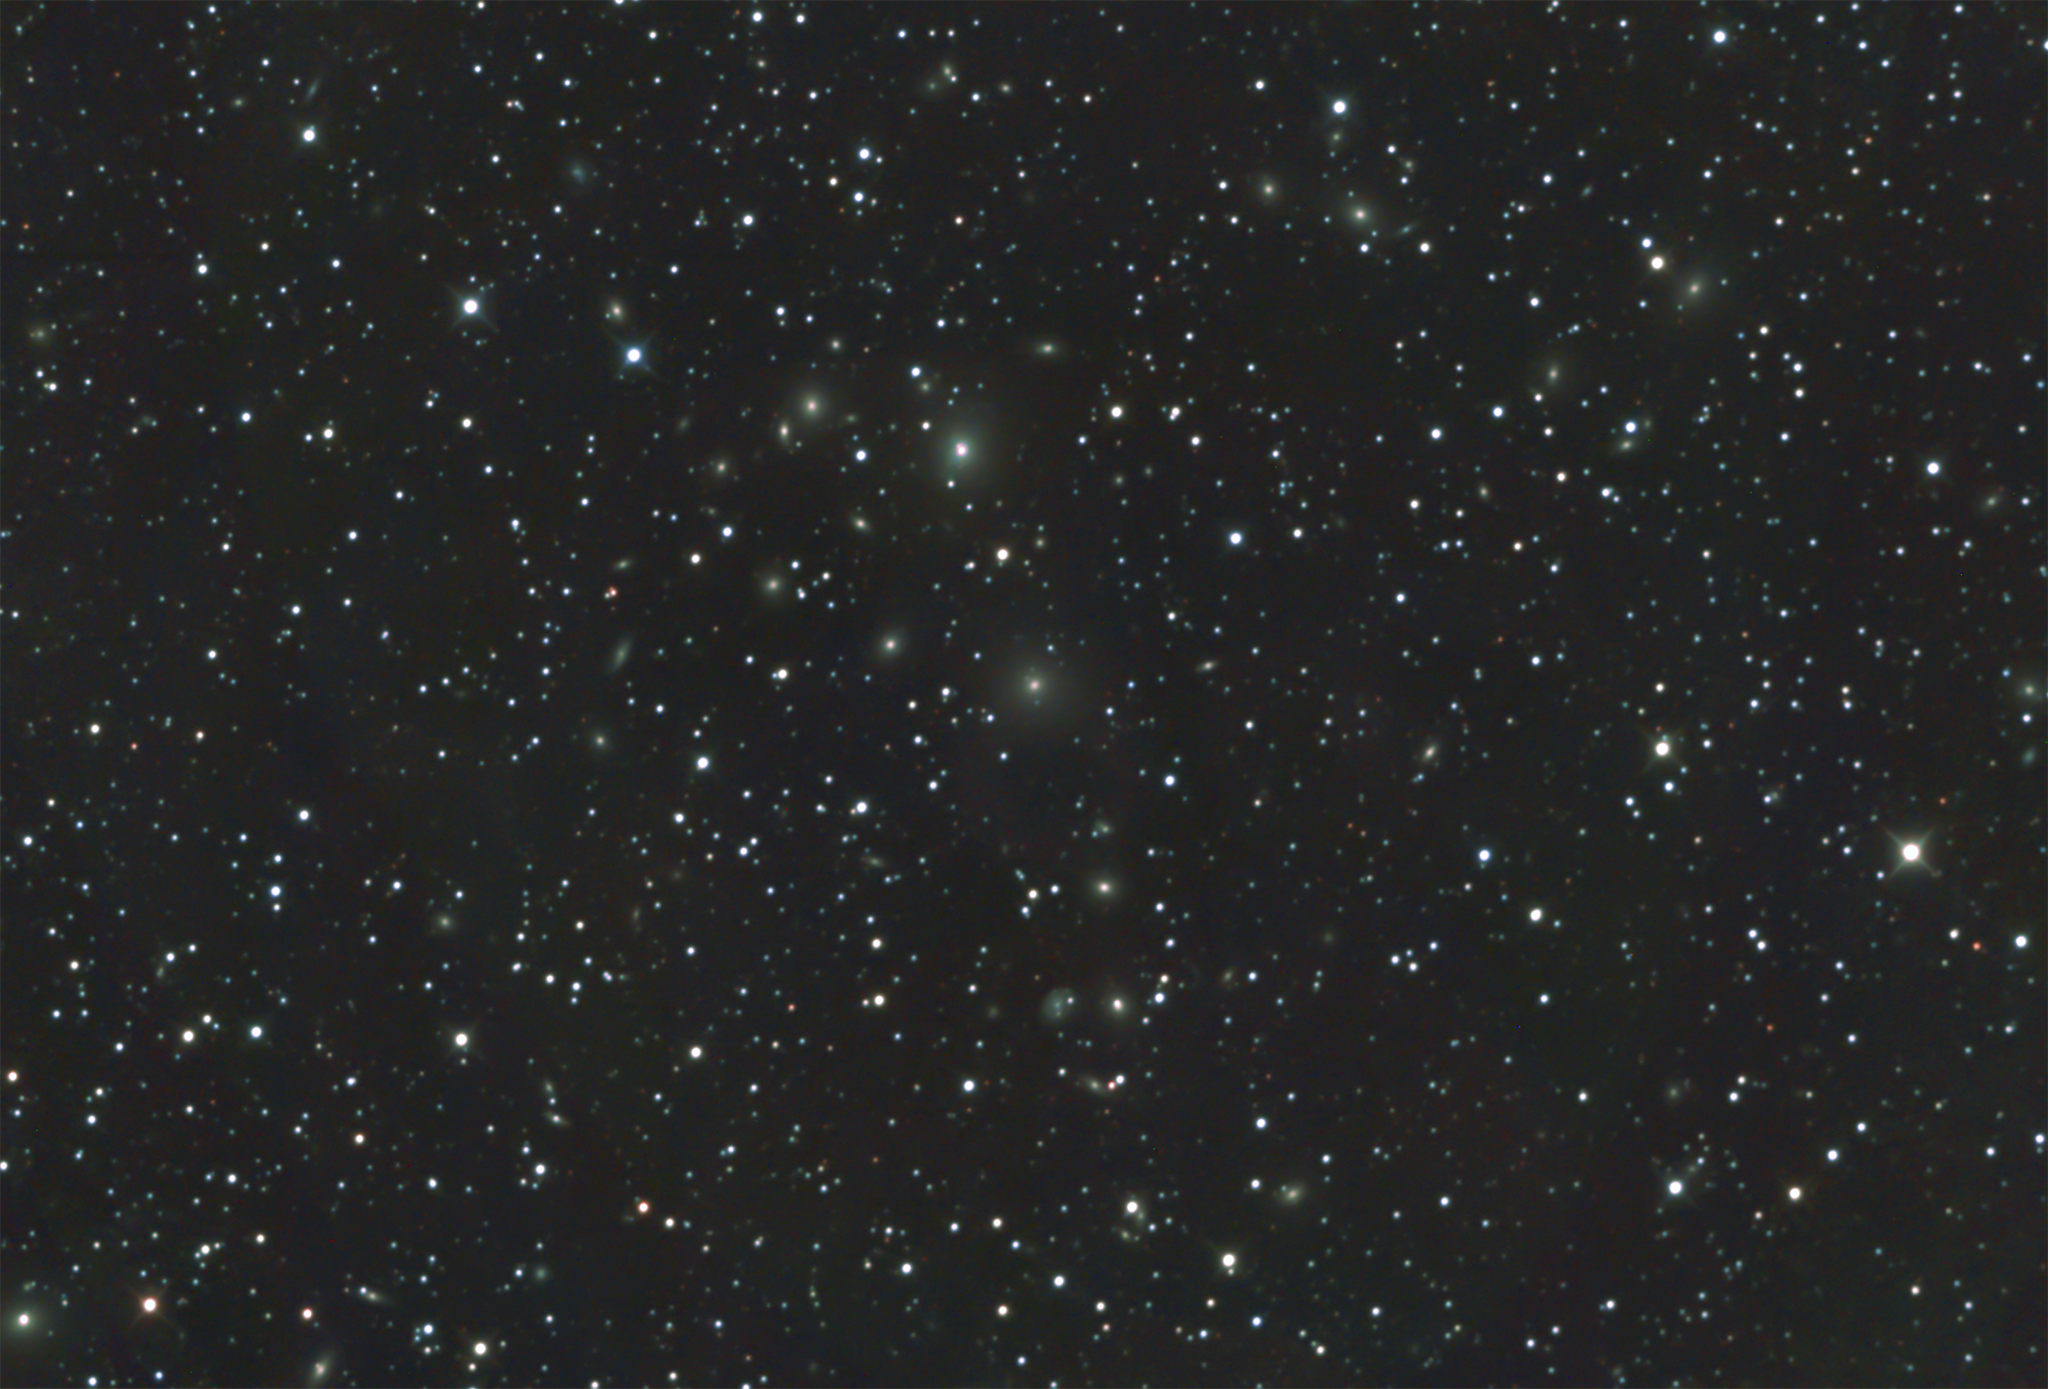 Abell 426